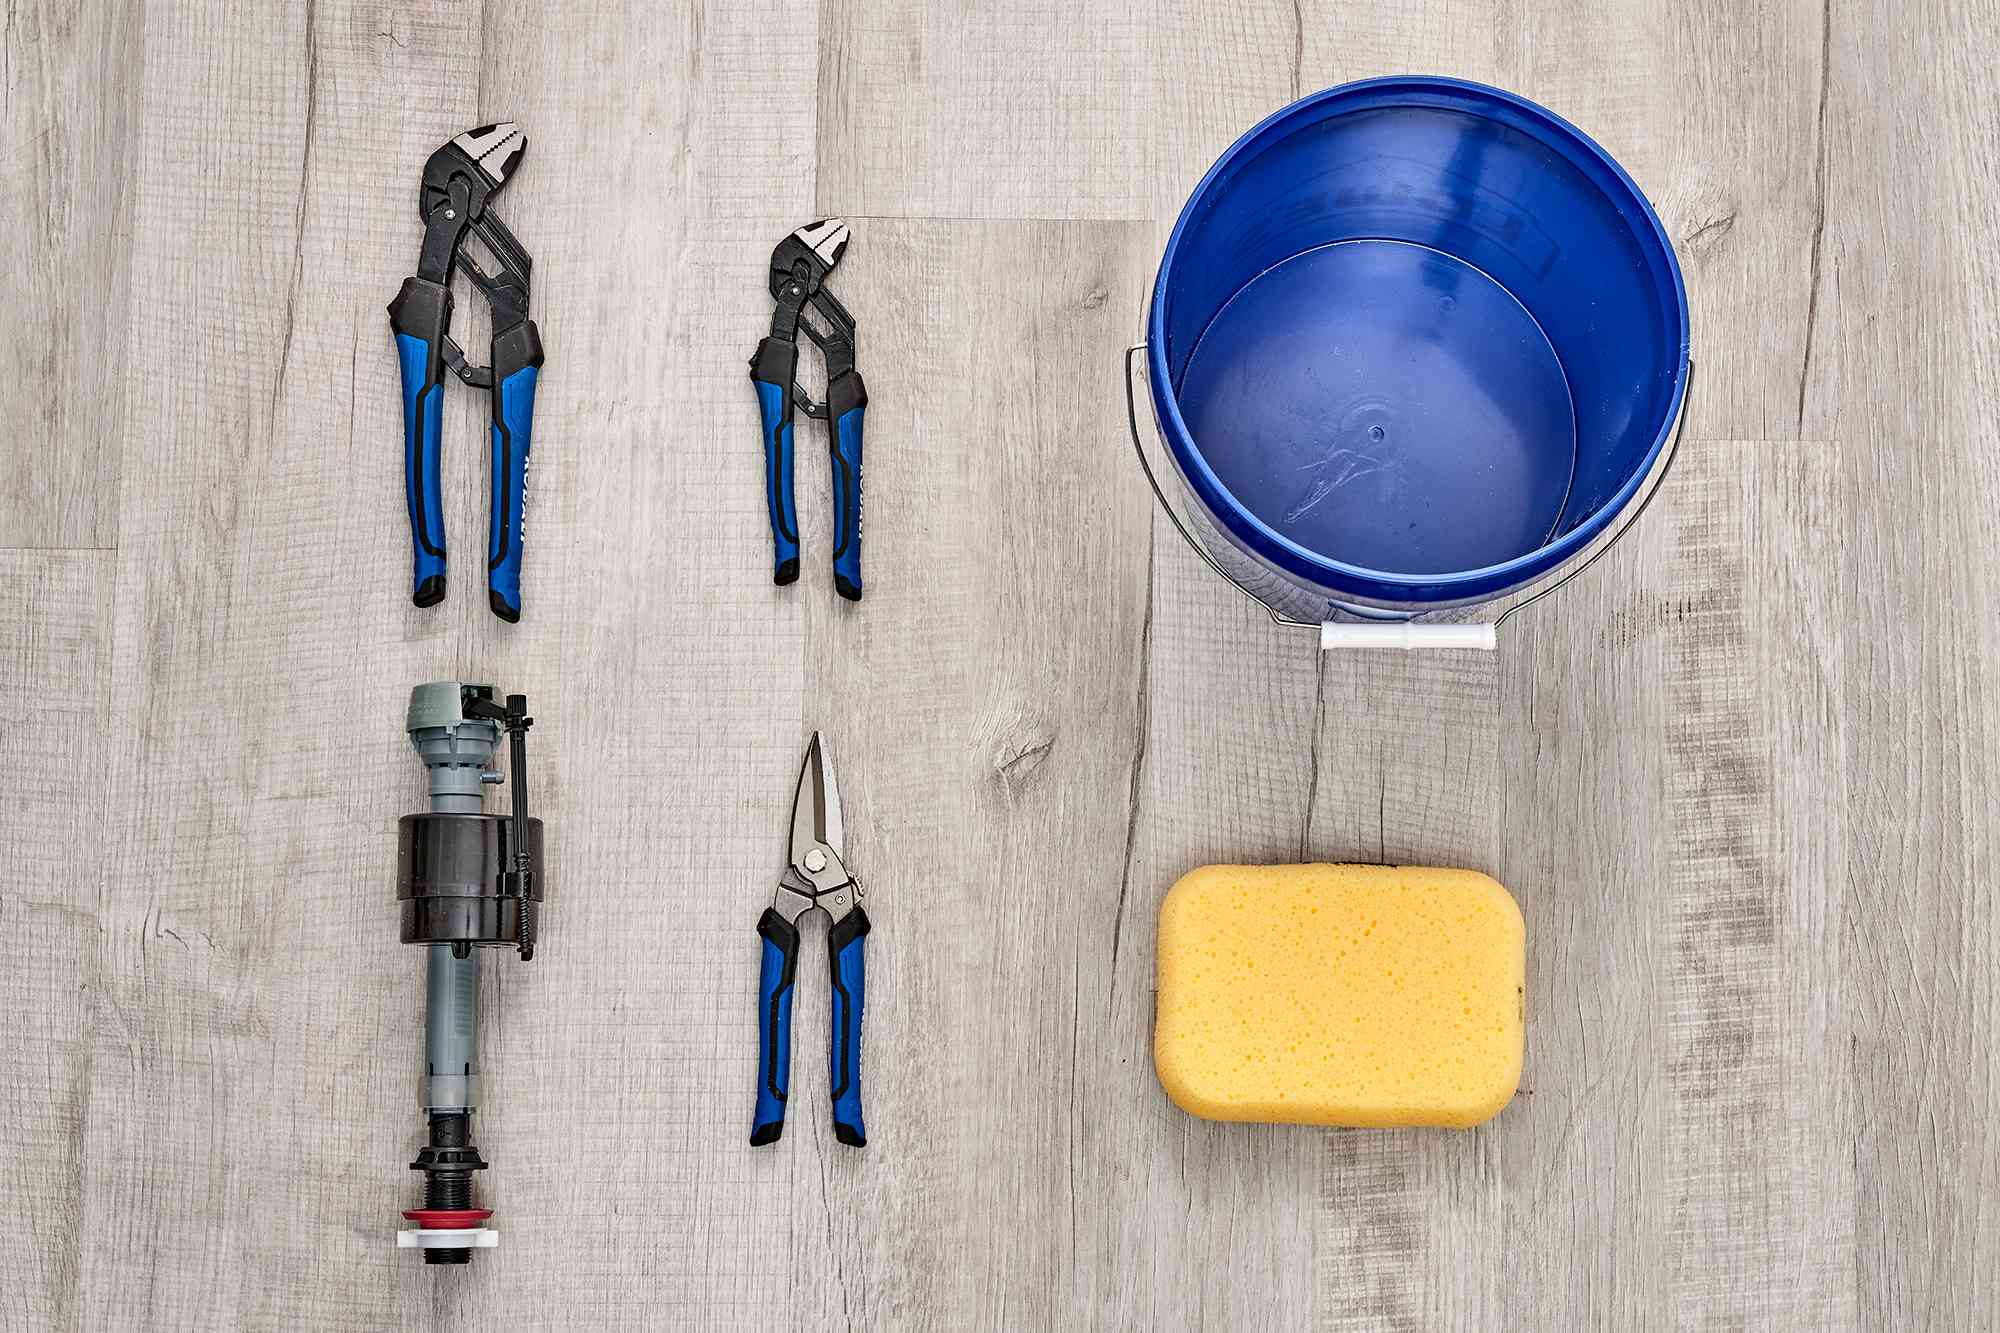 Tools and materials to replace a toilet fill valve